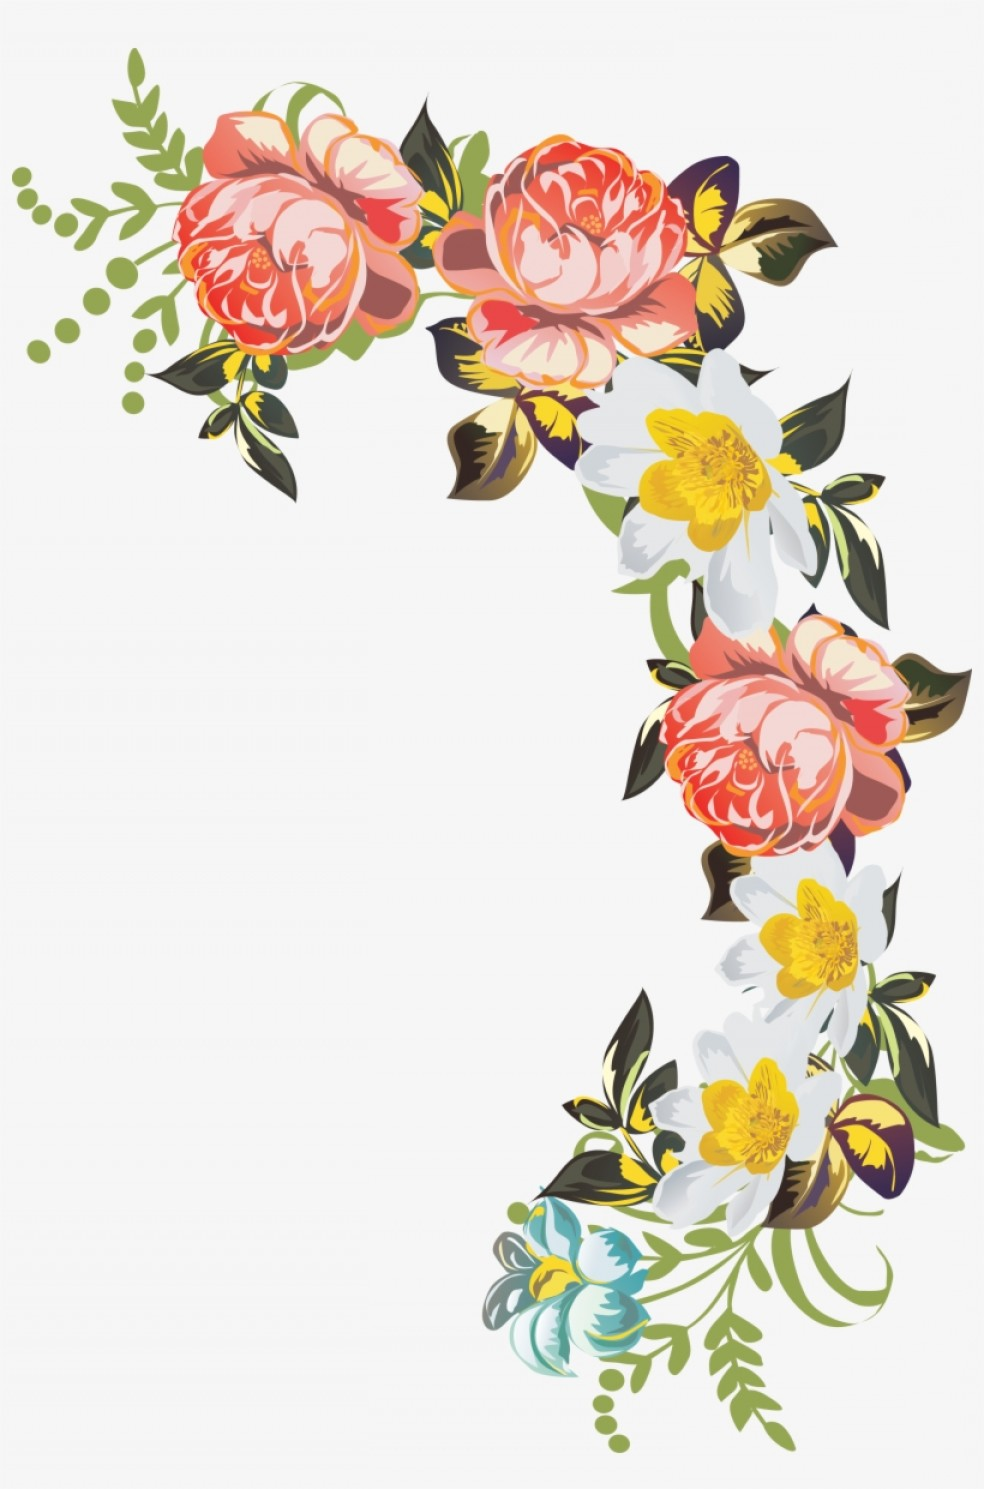 Beautiful Flowers Vector Graphic: Uewwtwtybeautiful Flowers Vector Flowers Free Vector Graphics Peony